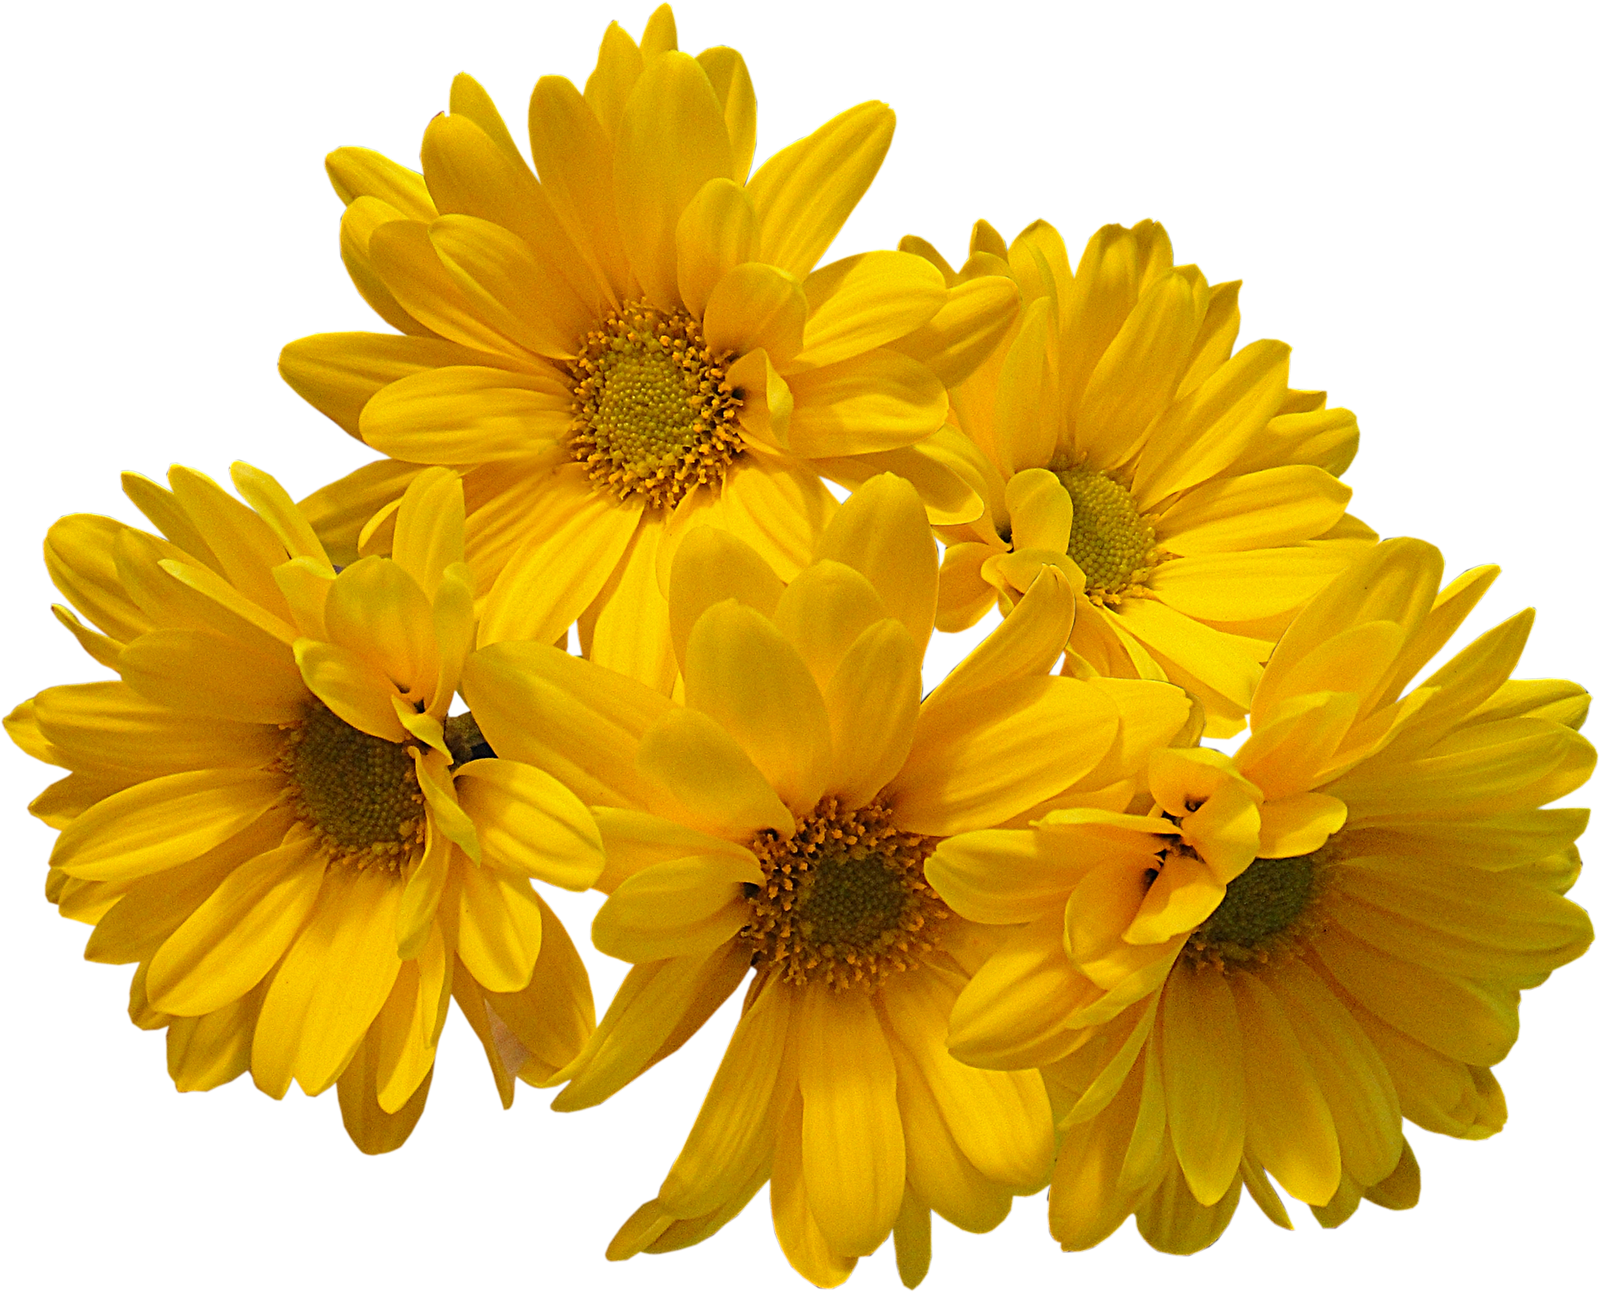 download yellow flowers bouquet transparent image #8184